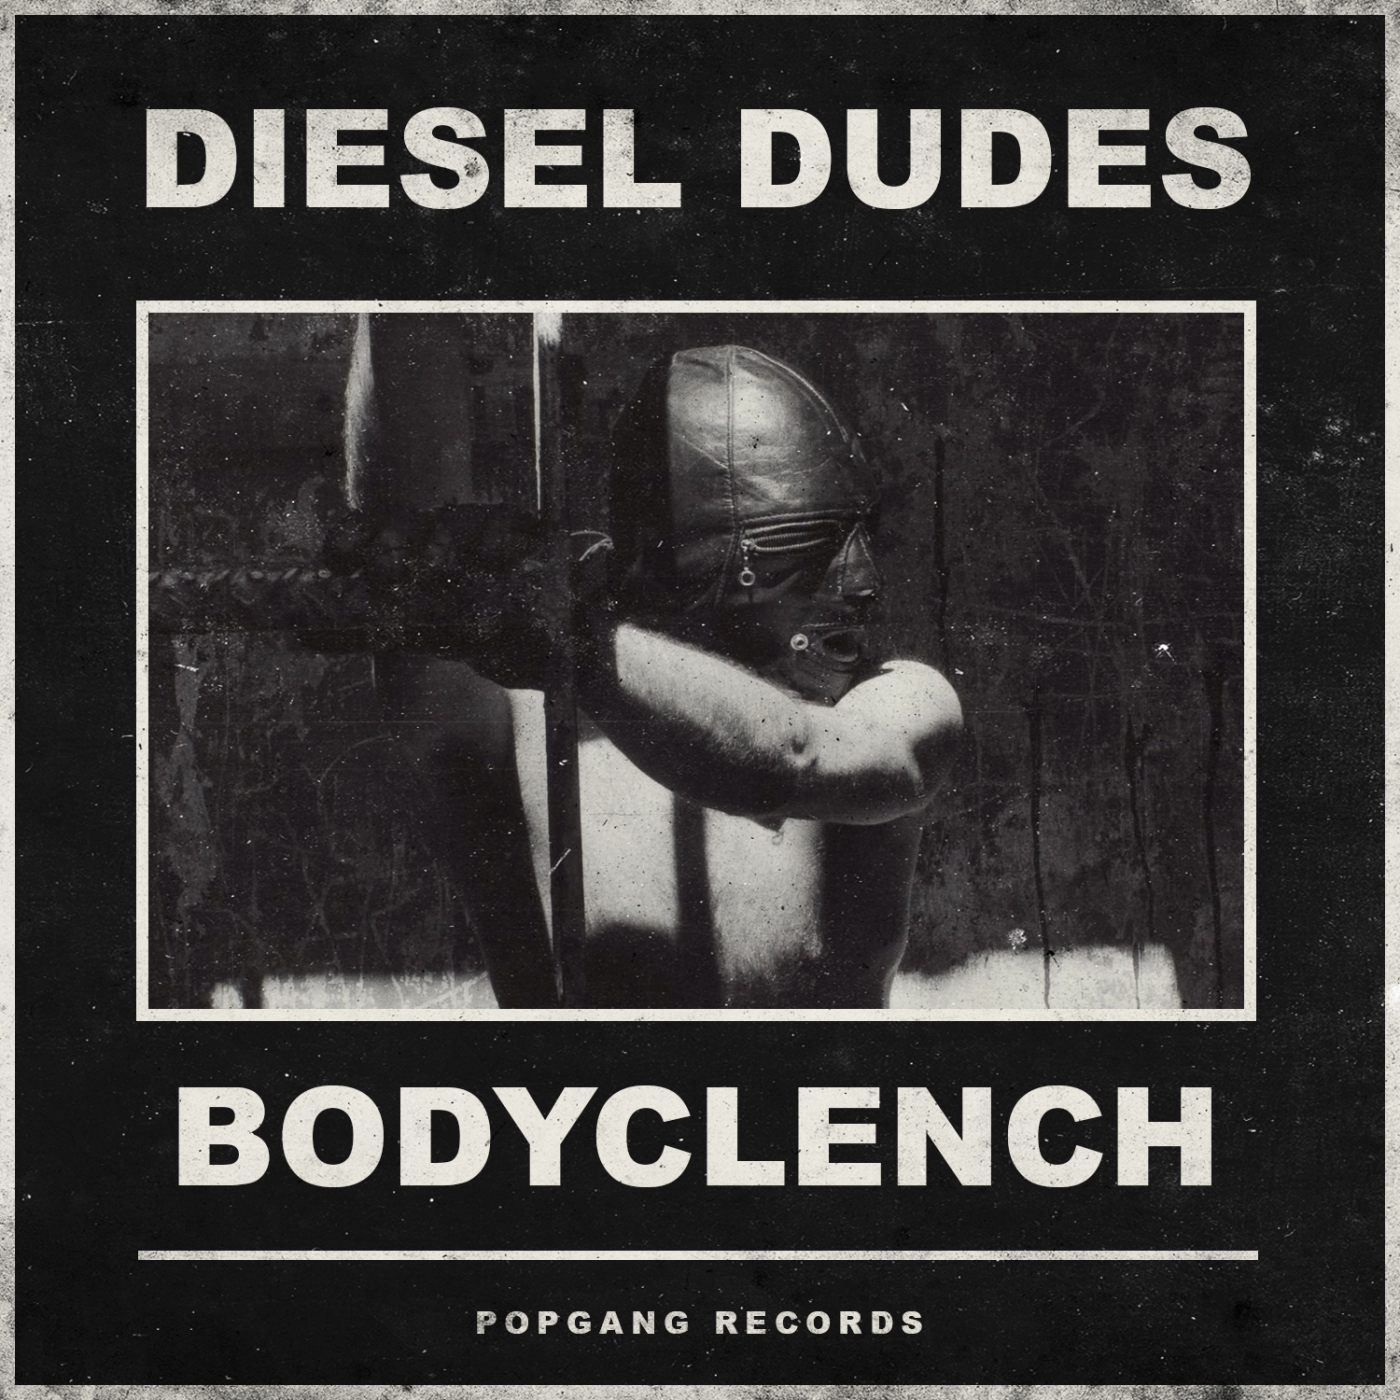 Diesel Dudes - Body Clench EP